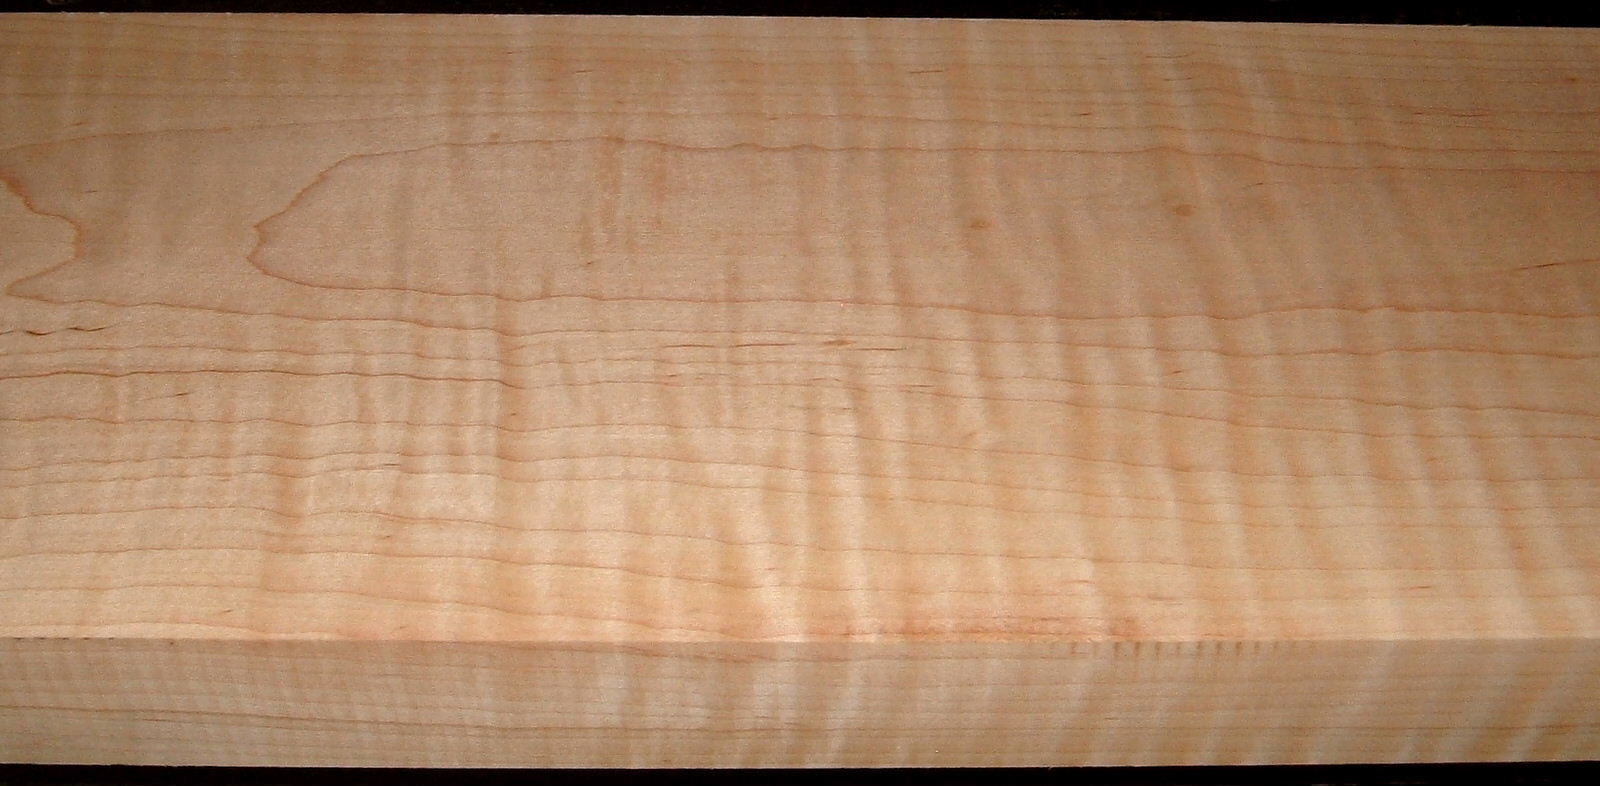 M2006-488, 1-3/4x8-7/8x42, 8/4 Curly Tiger Maple